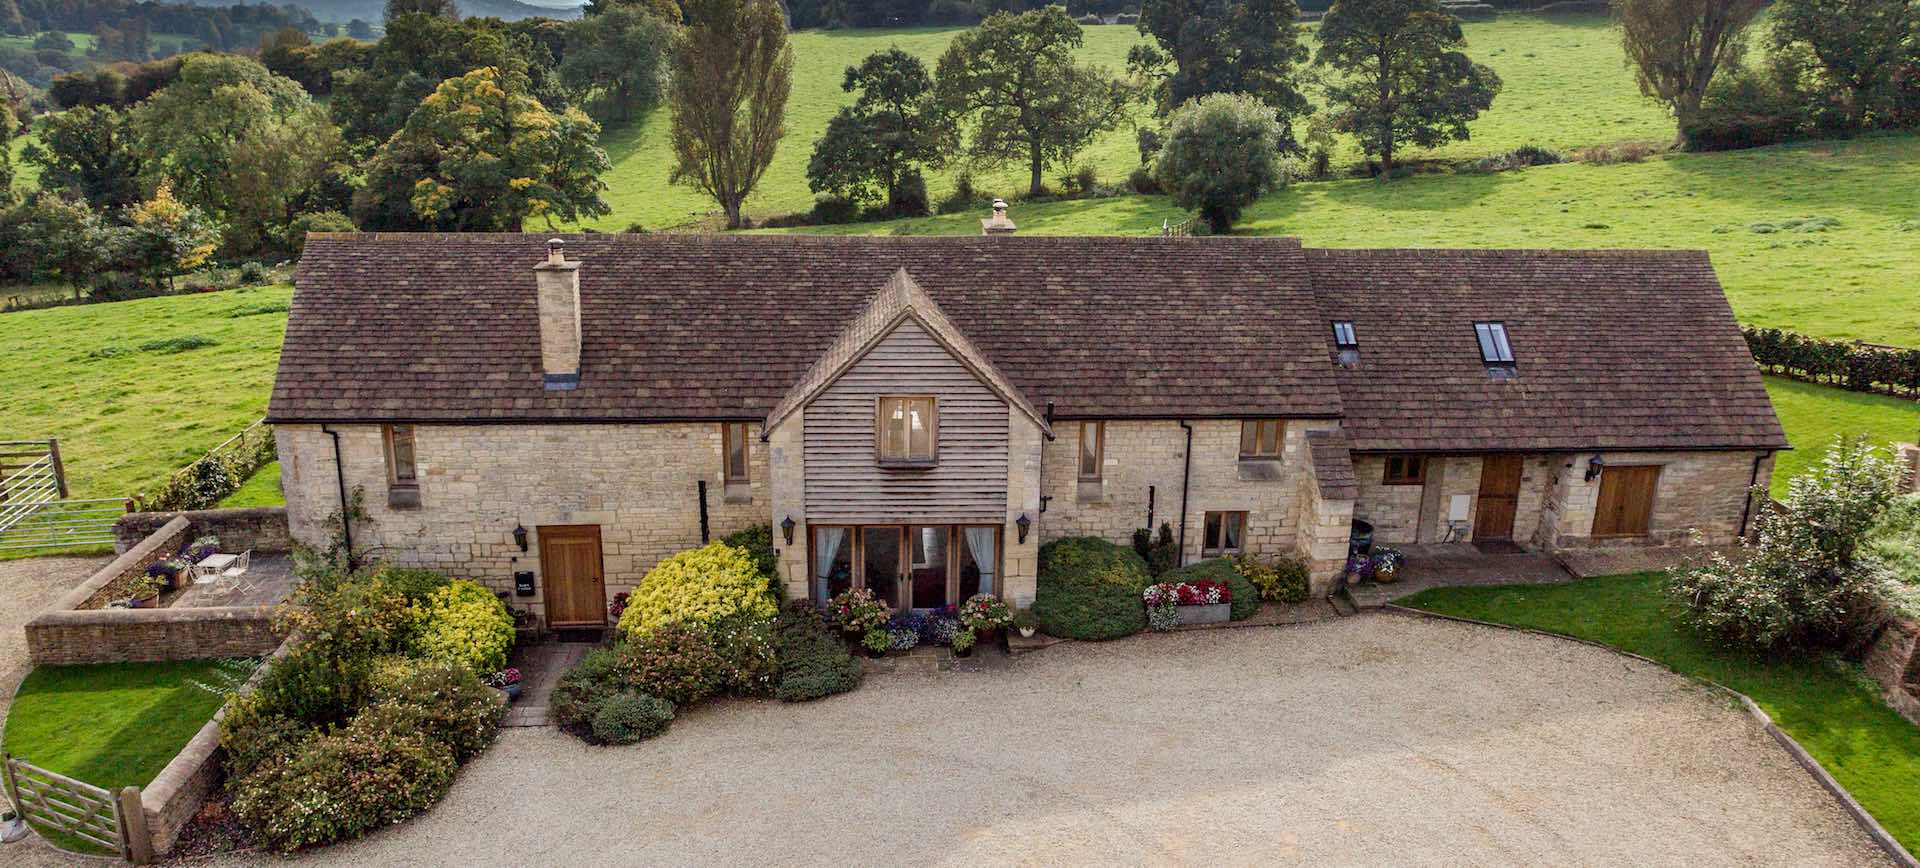 Barncastle Cotswolds Accommodation